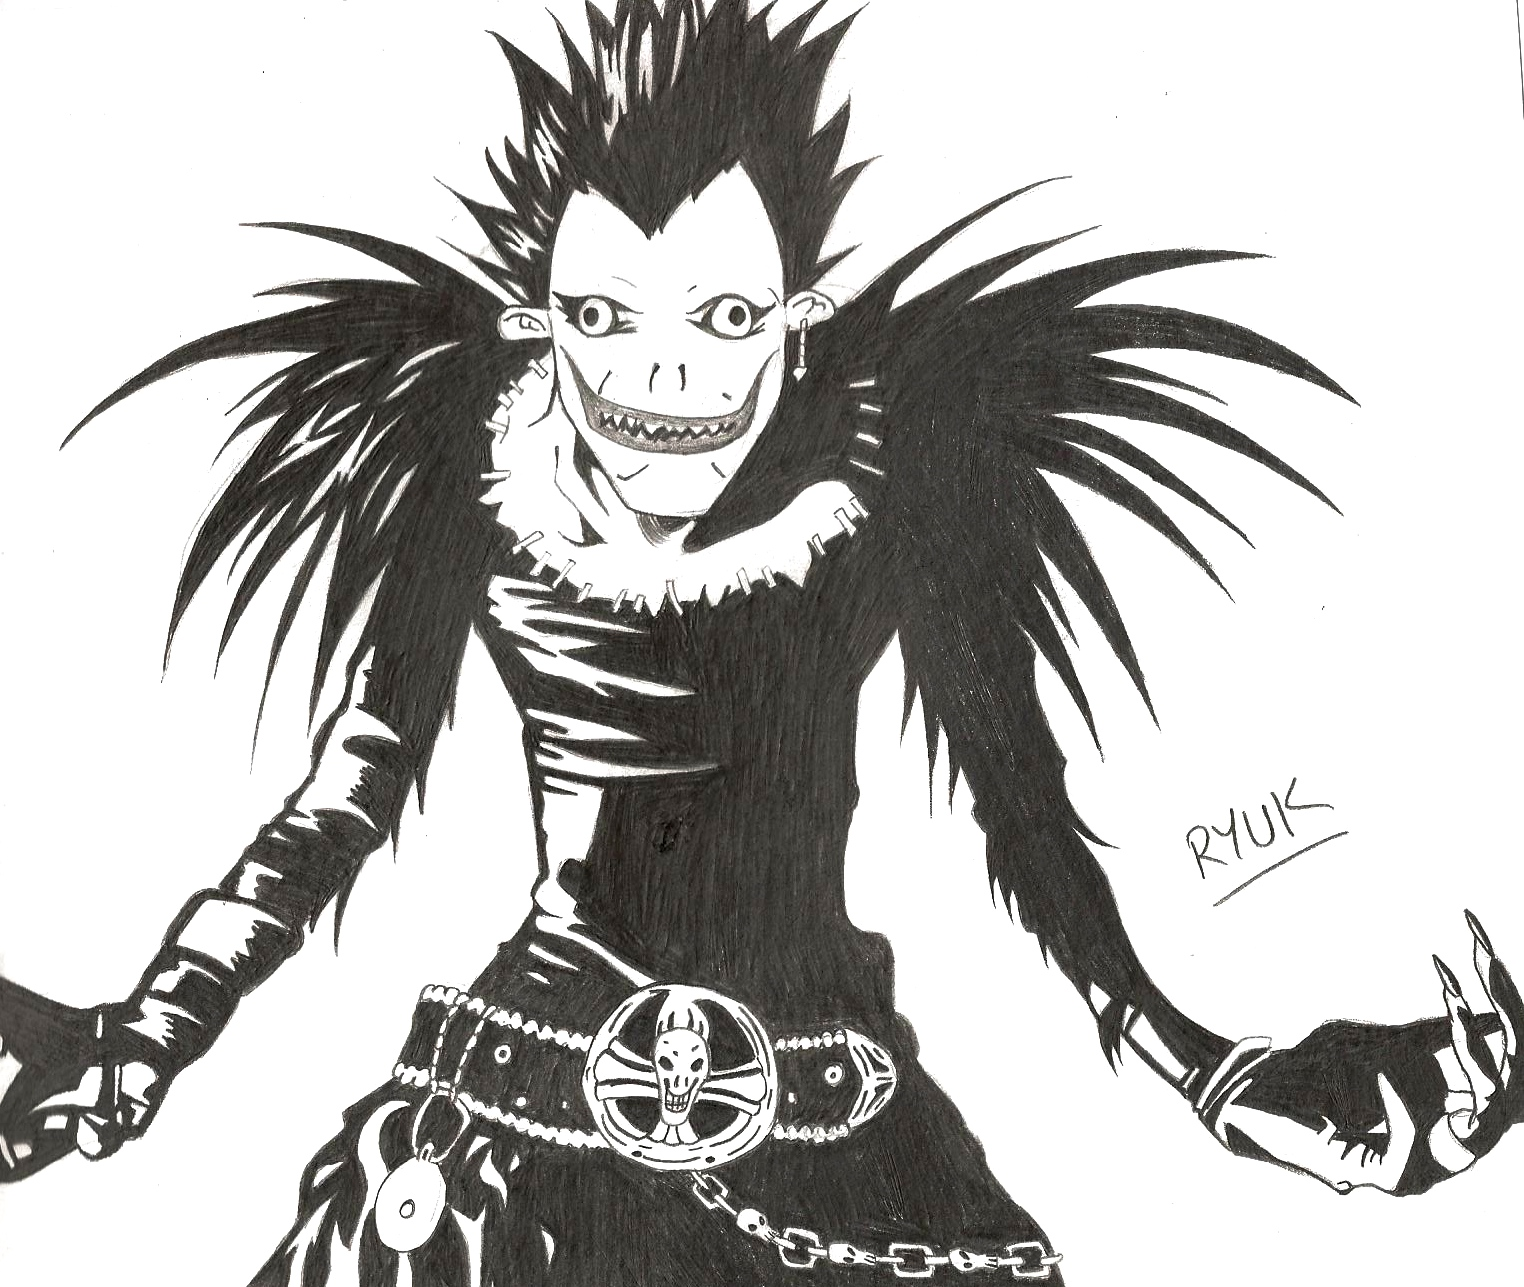 Ryuk sketch by katpann on DeviantArt